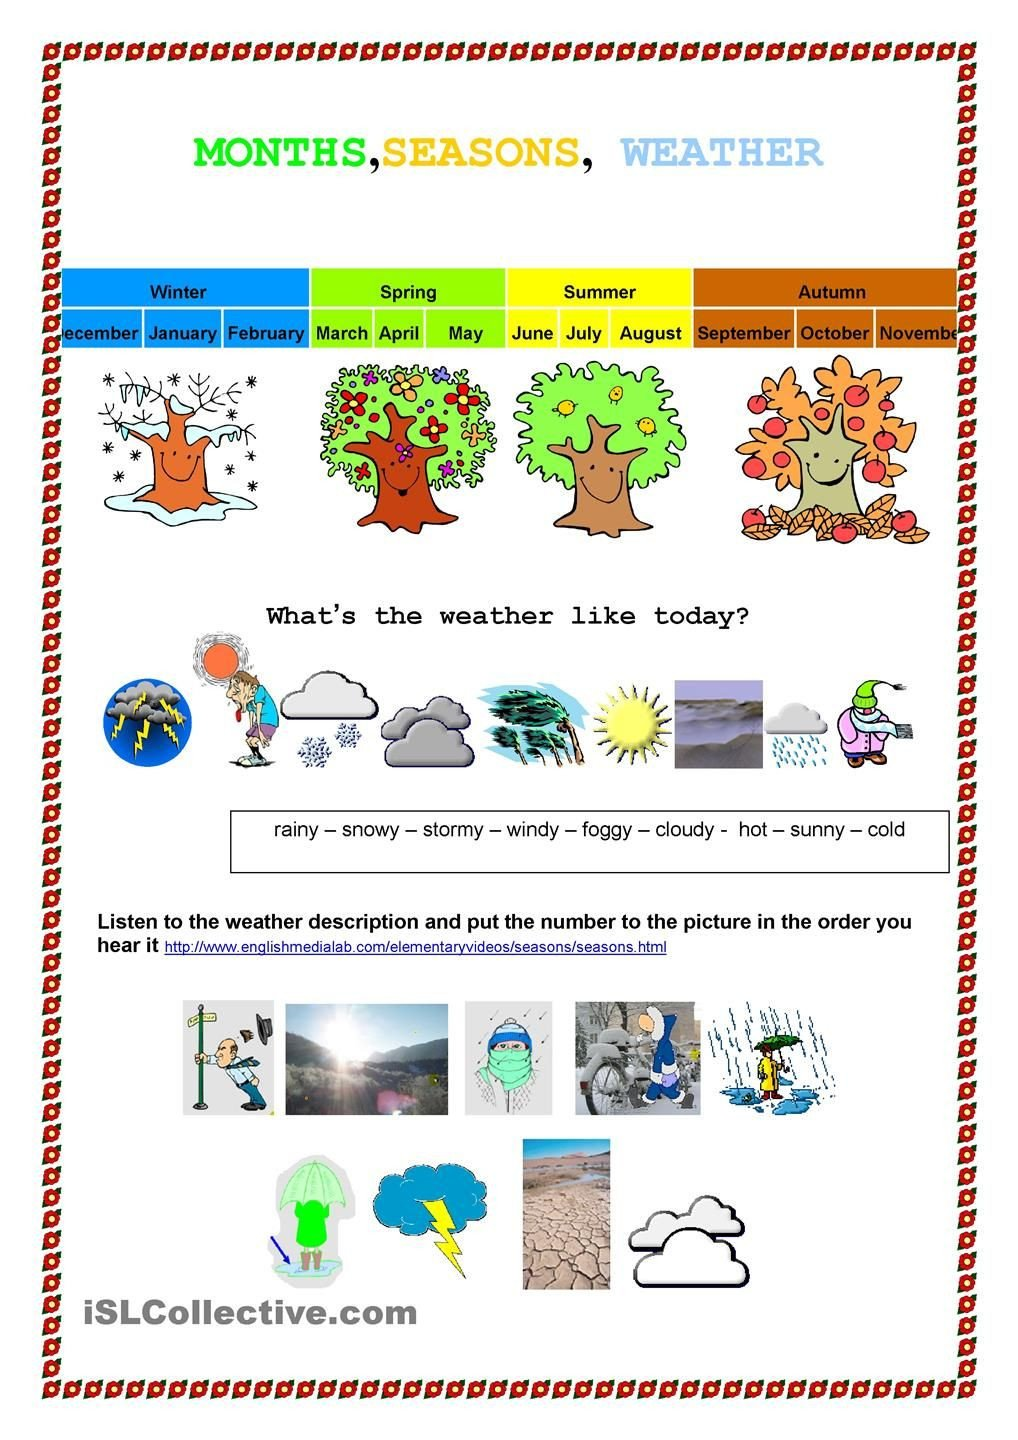 Spanish Months and Seasons Worksheets Month Seasons Weather